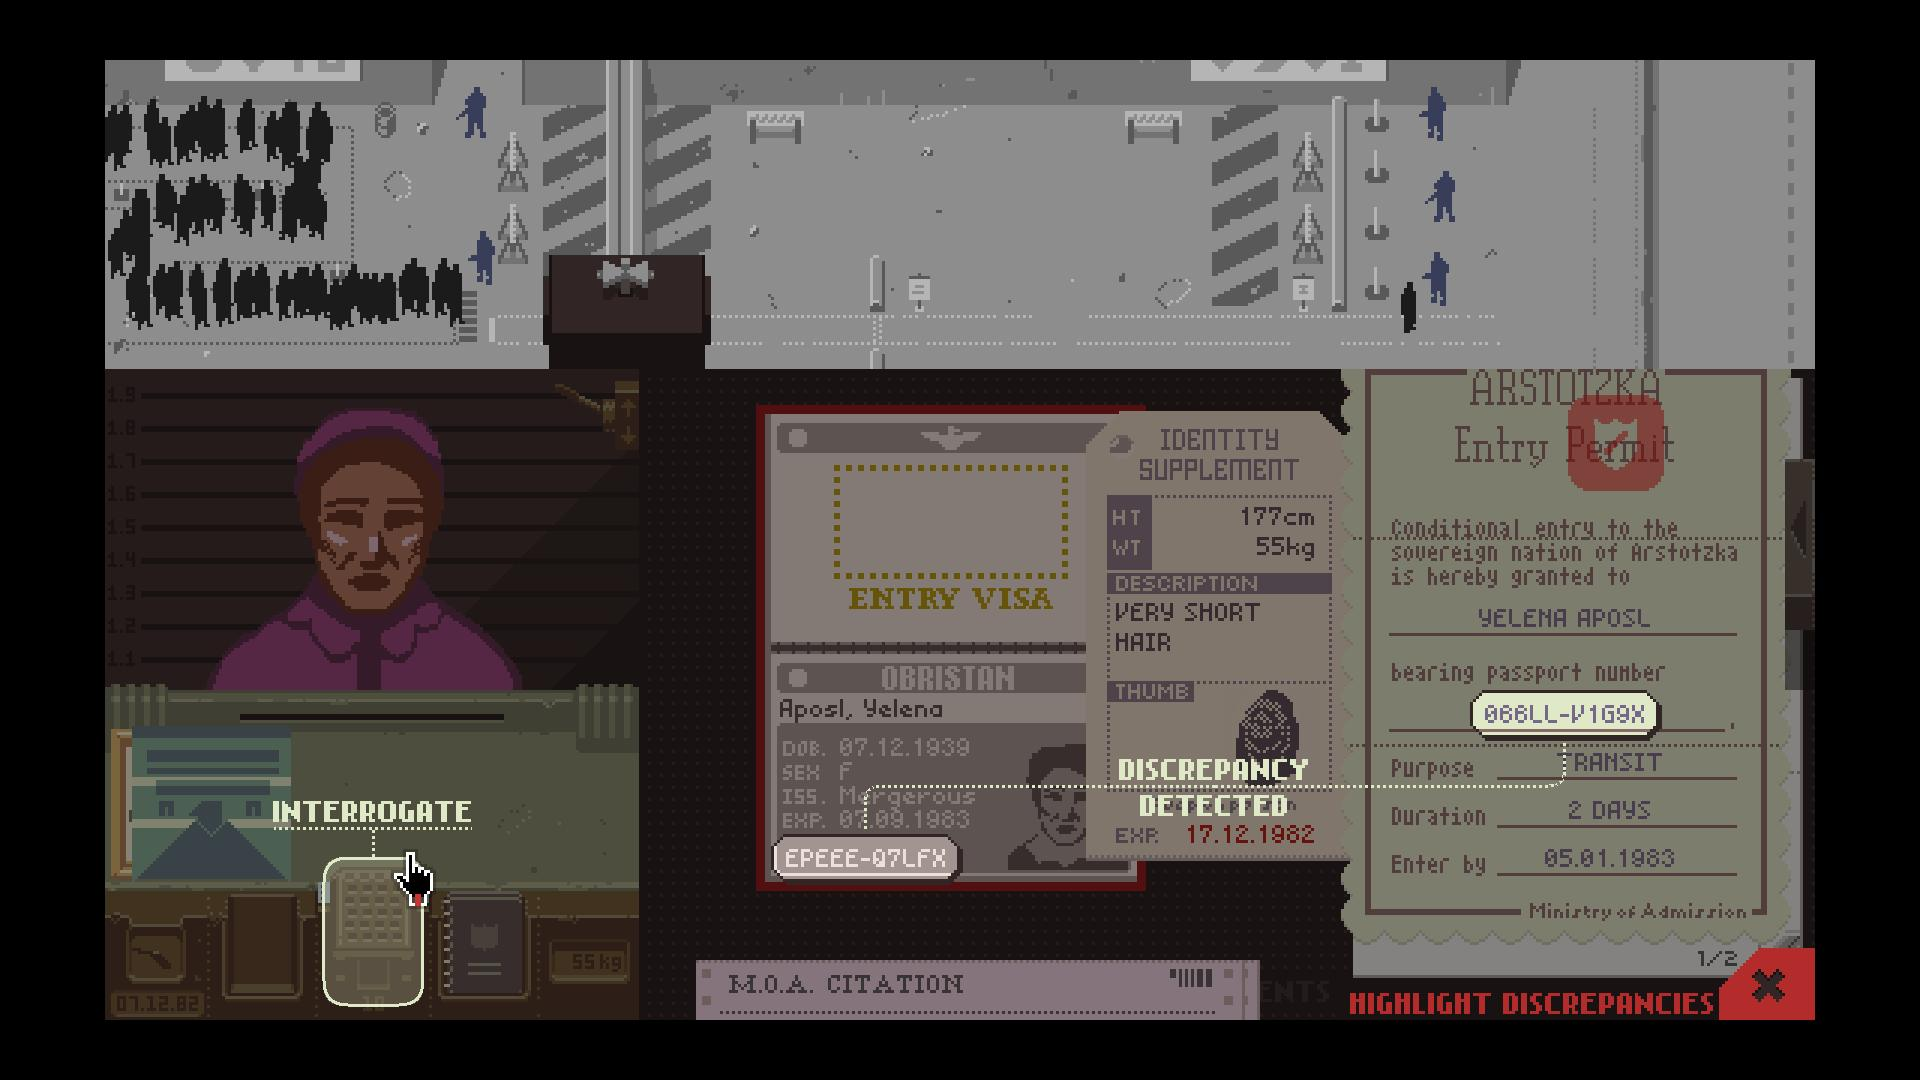 Pope: Papers, Please.